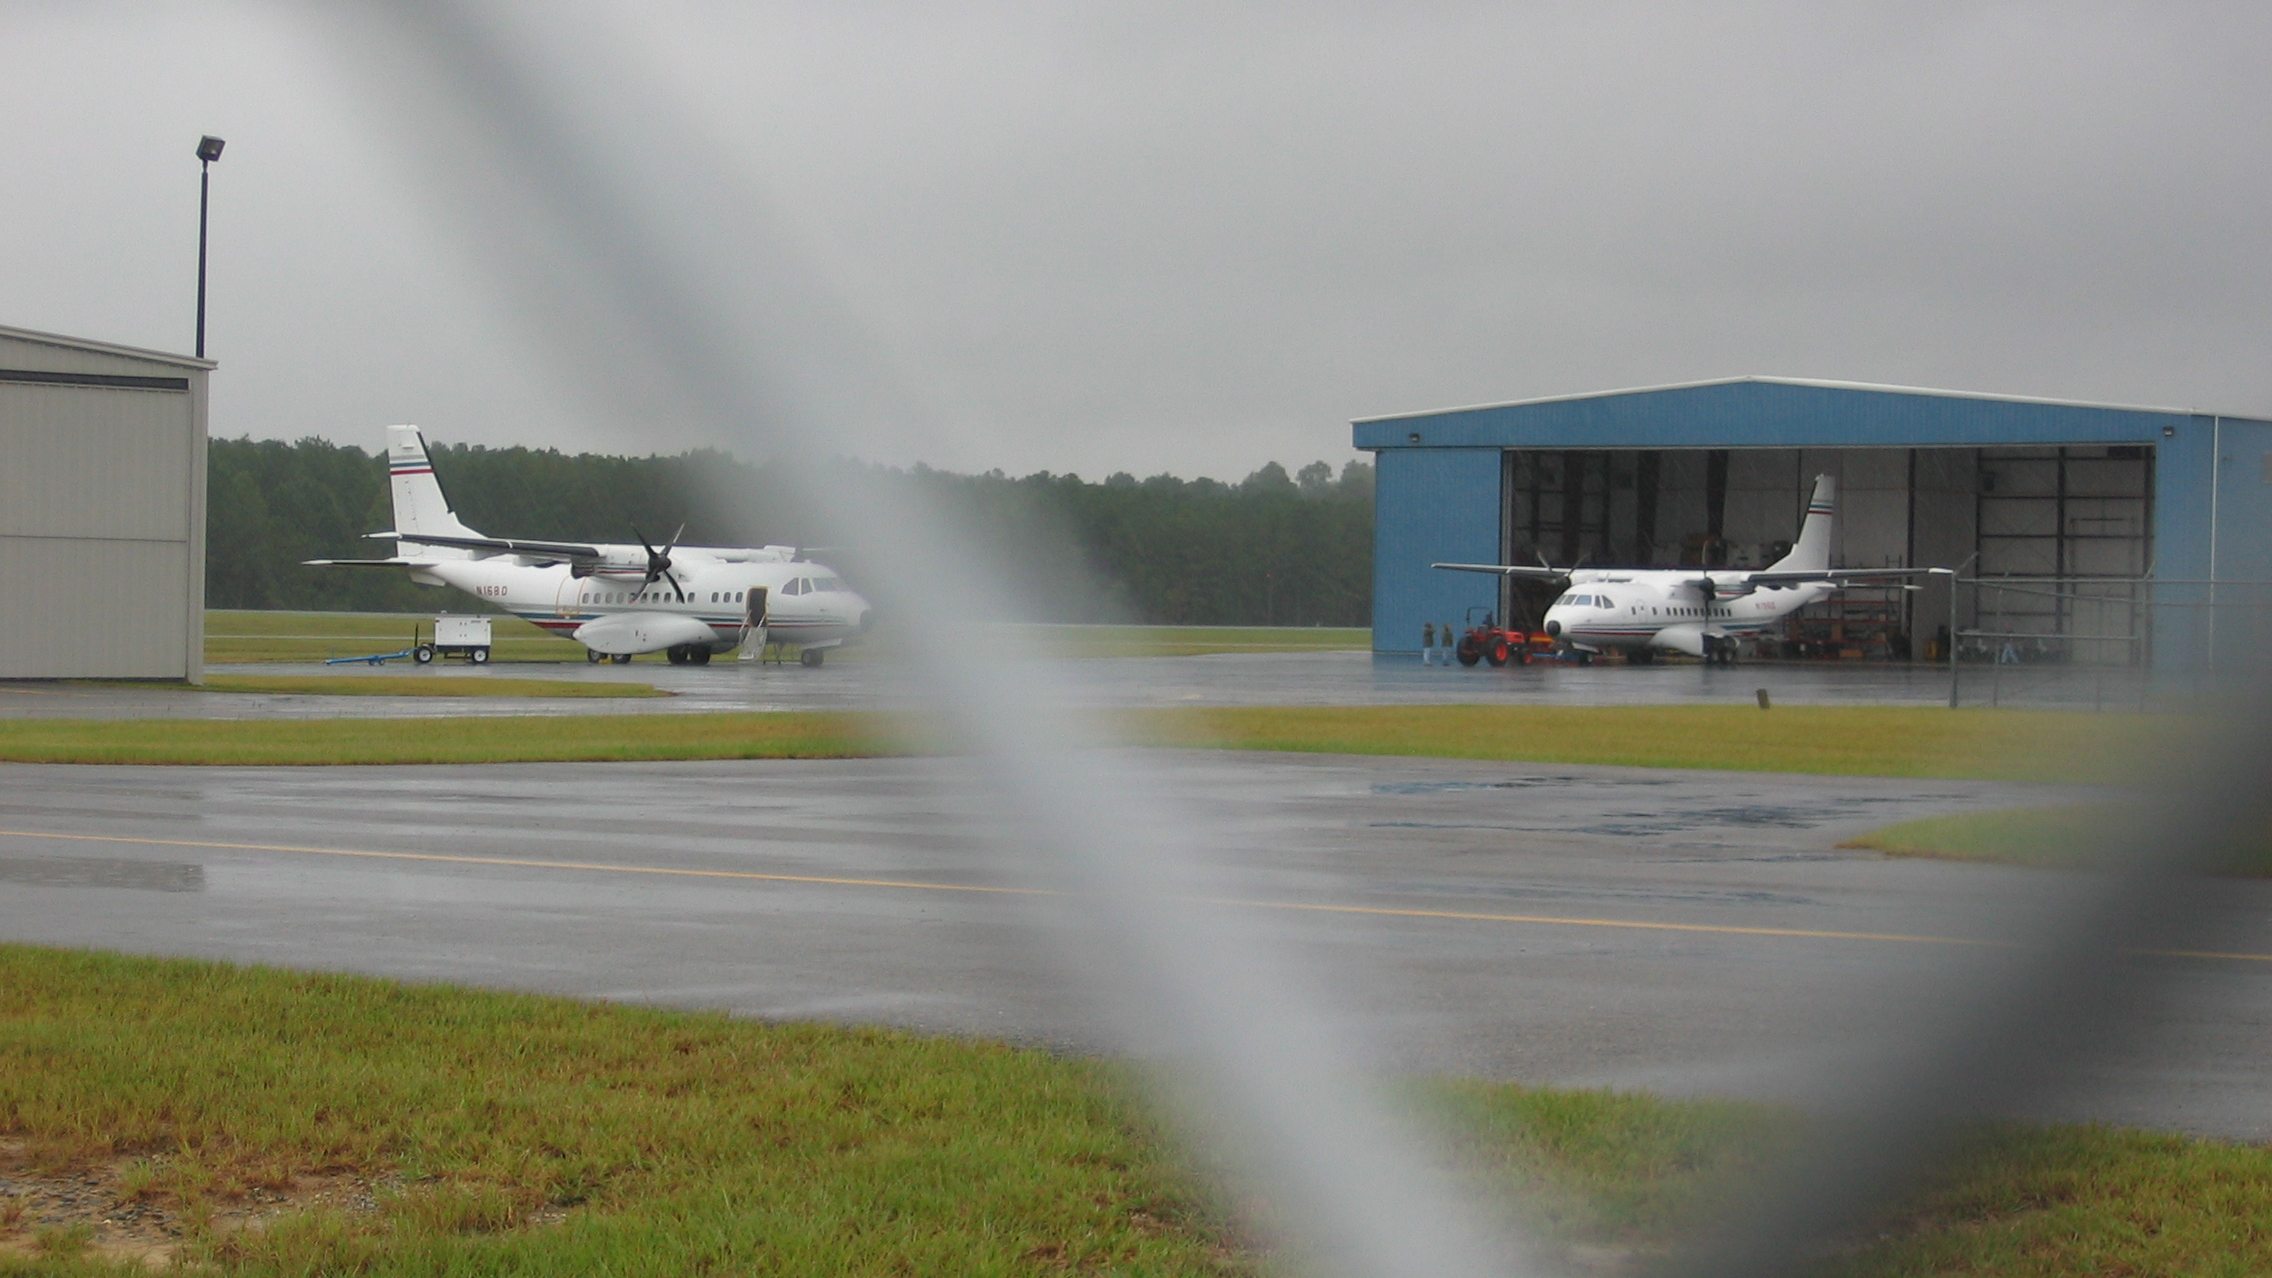 n168d and n196d, photographed at the johnston county airport on September 7th, 2007